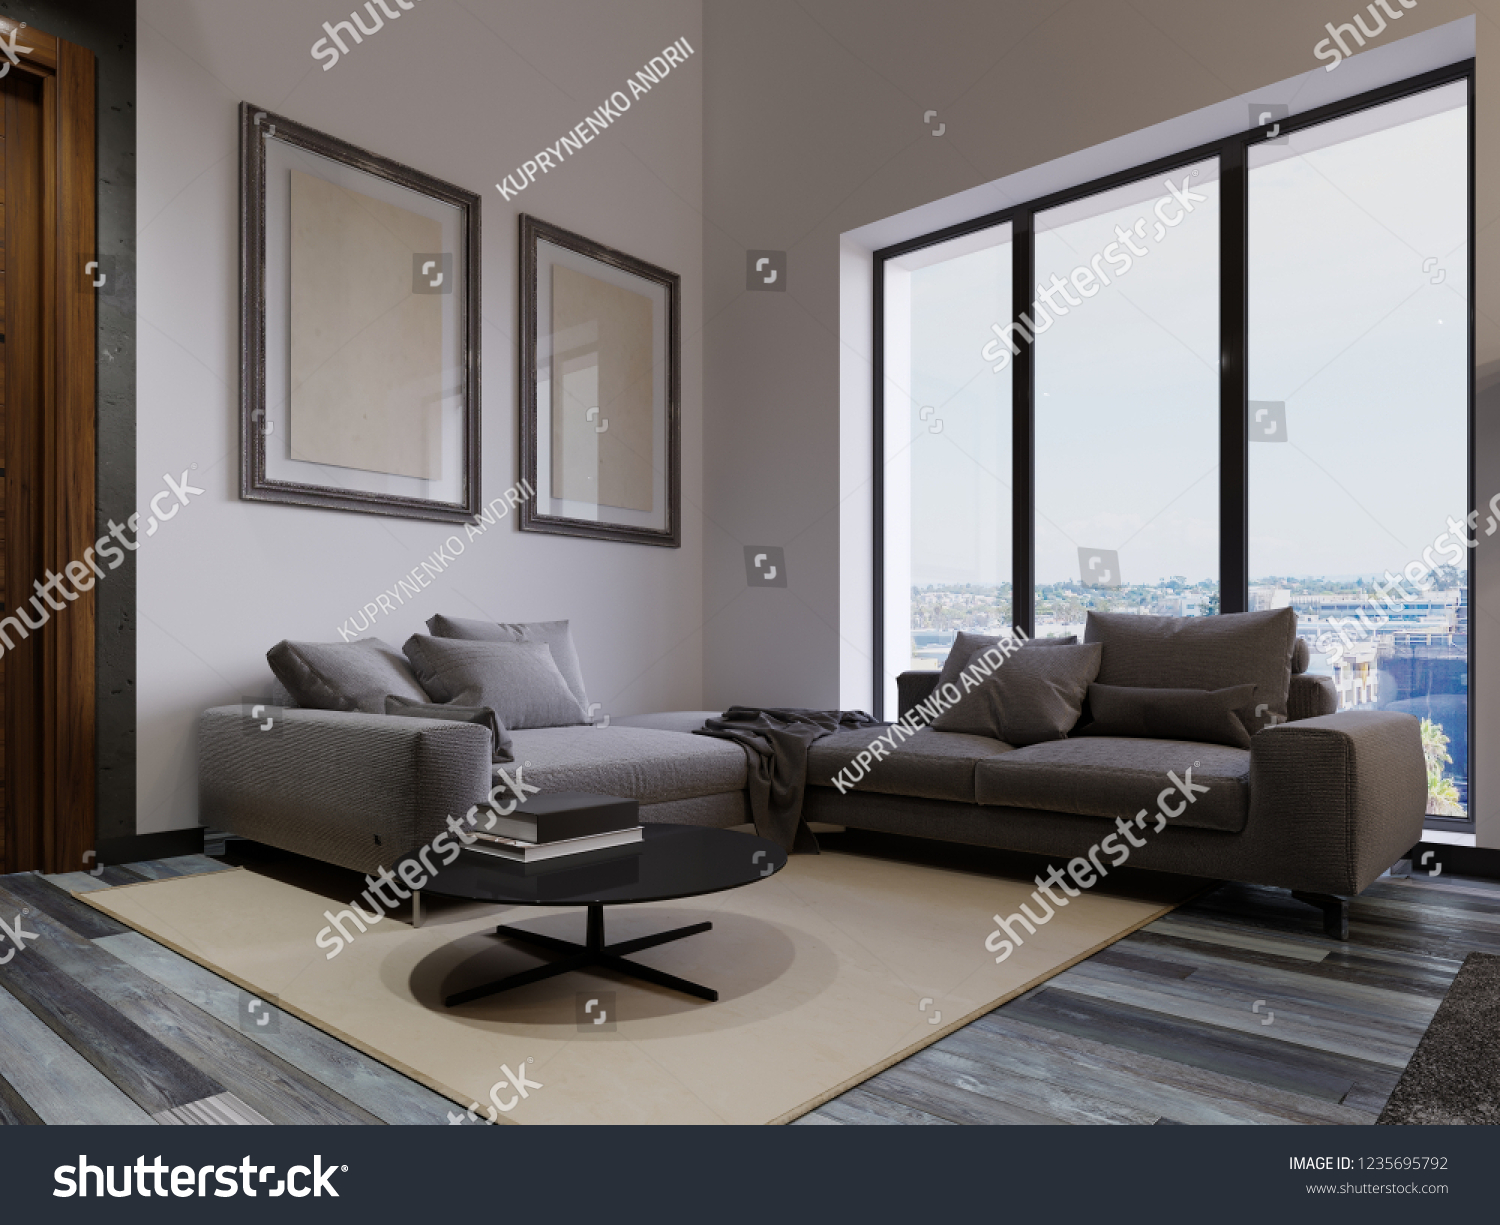 large corner sofa in small living room simple false ceiling designs for photos by stock illustration royalty free a the window is contemporary style gray fabric